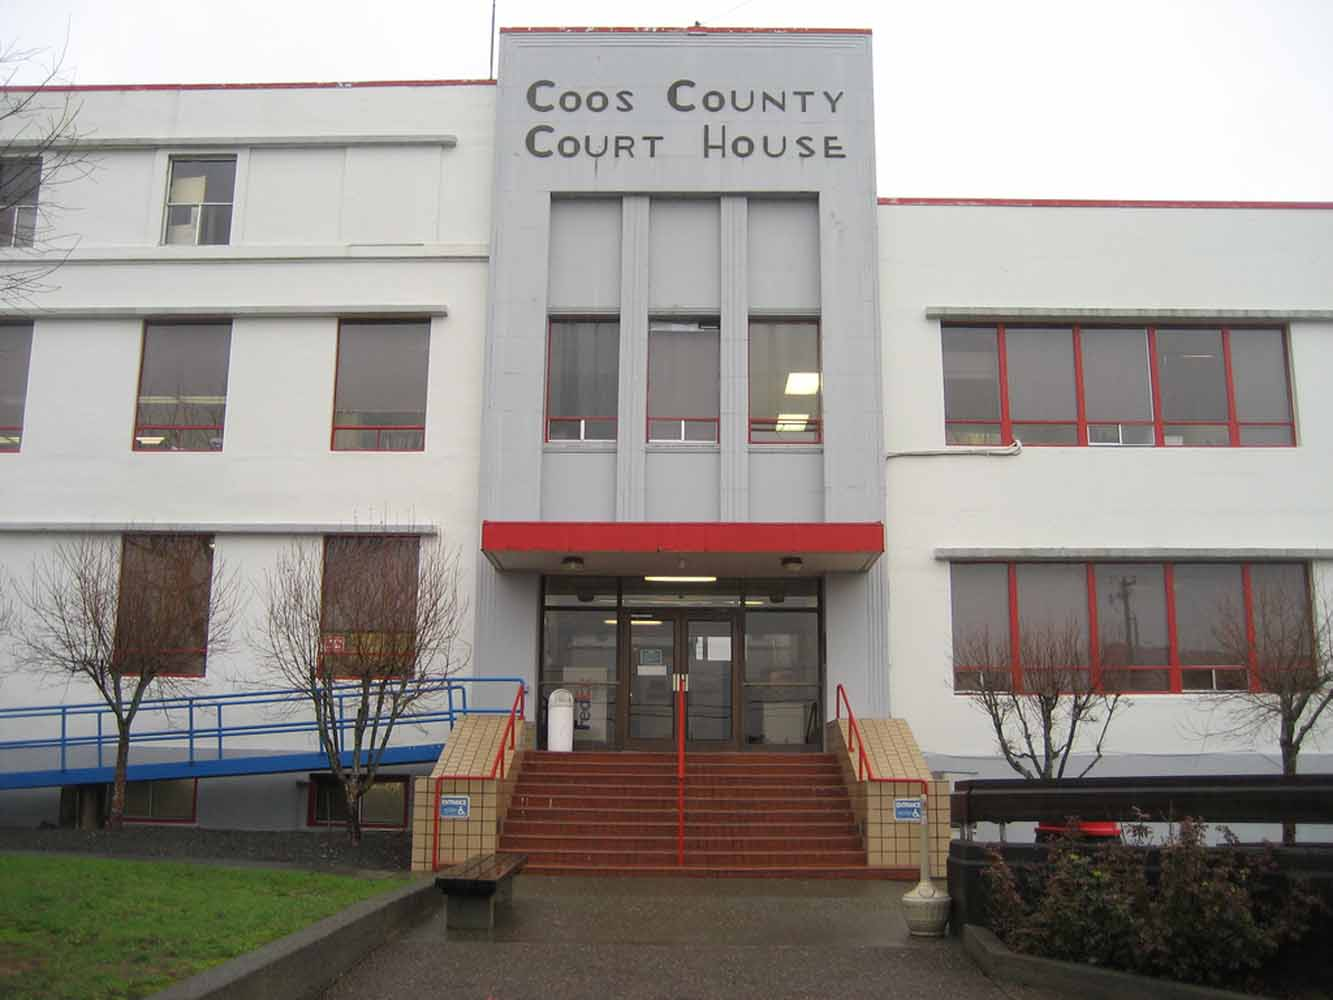 Coos County Courthouse